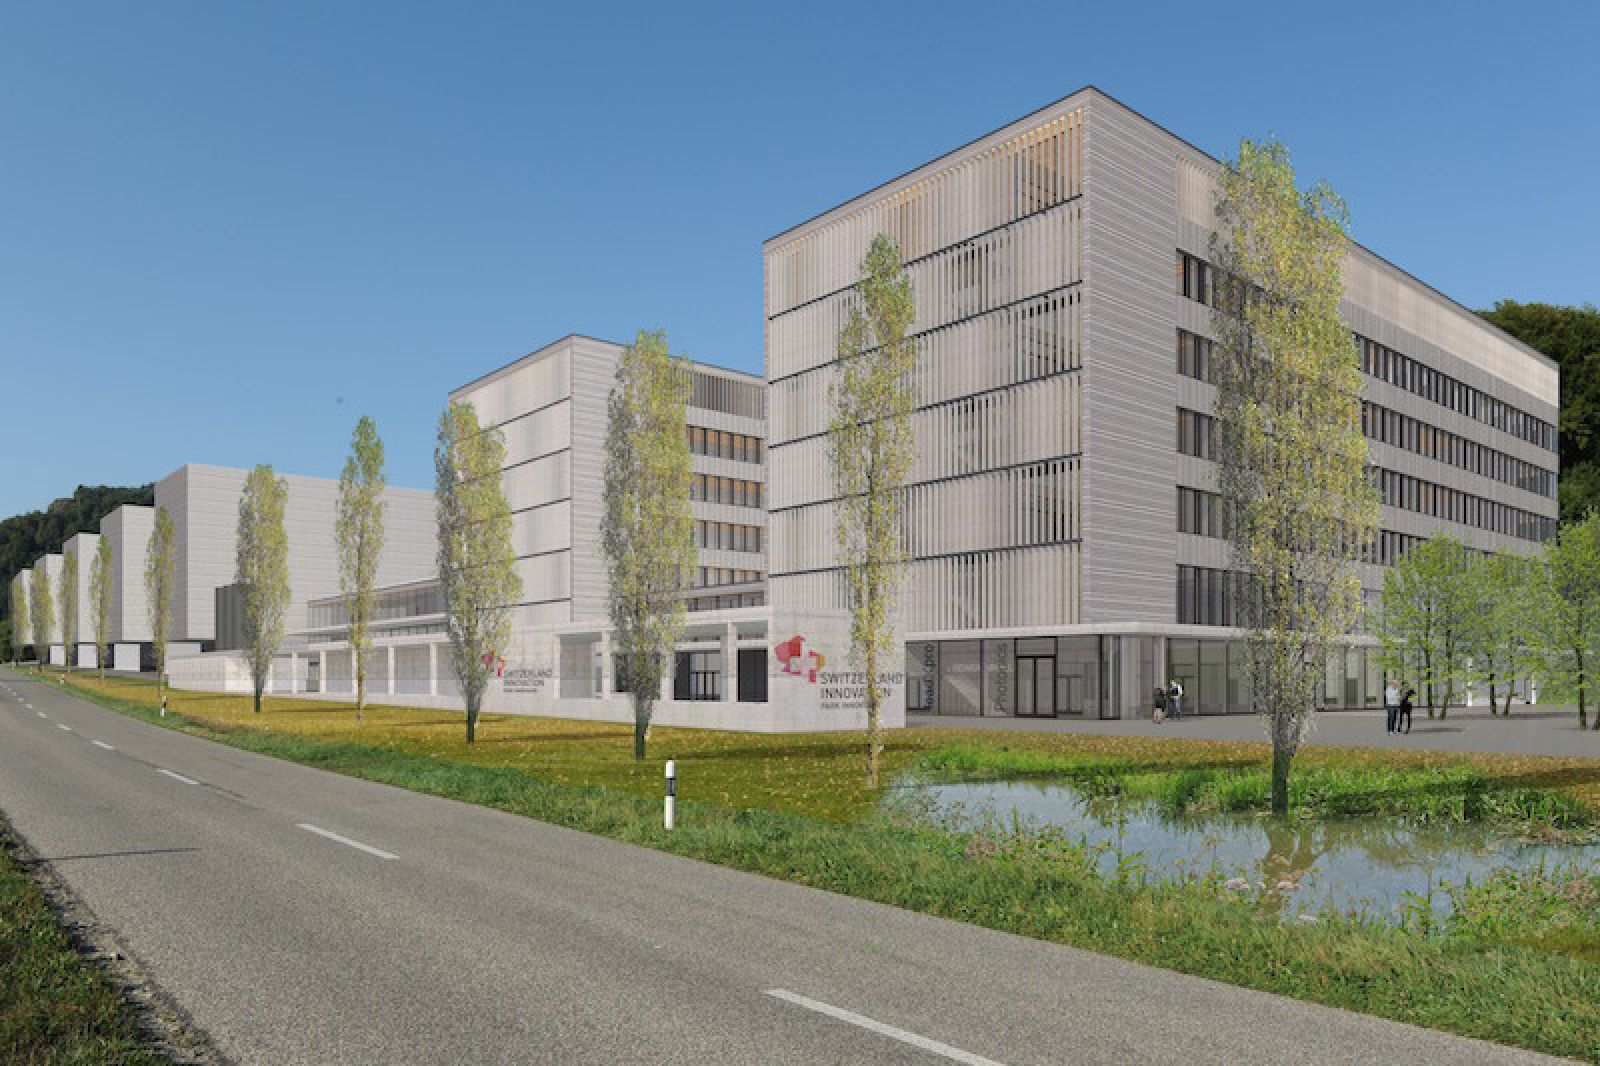 PARK INNOVAARE future campus: 35,000 square meters of state-of-the-art and highly flexible areas for laboratories, clean rooms, workshops and offices.